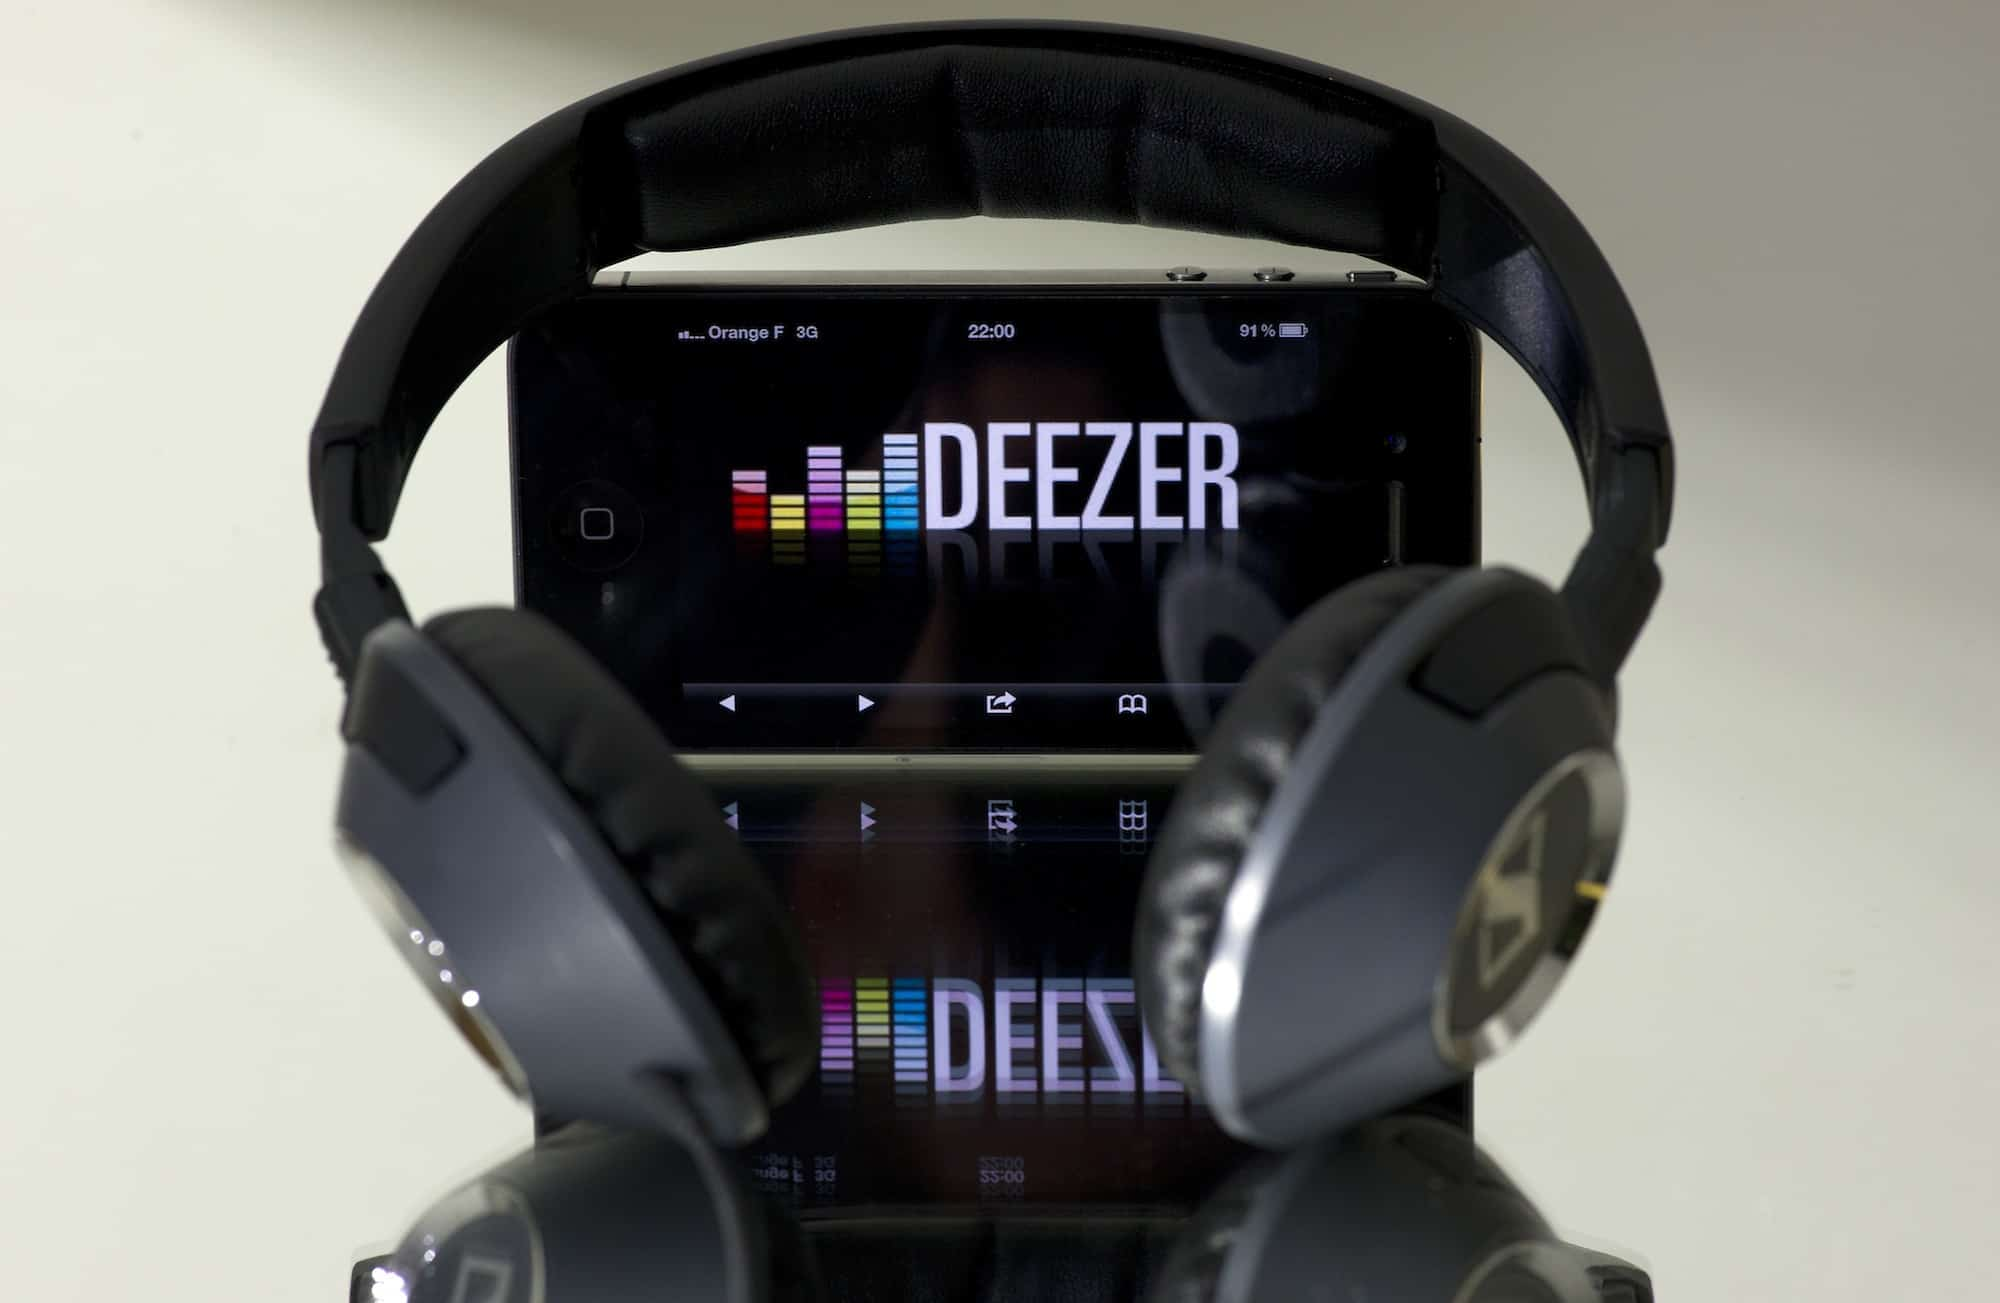 A picture taken on October 9, 2012 in Paris shows headphones beside a smartphone, which is connected to French music streaming website Deezer. Len Blavatnik's Russian-US holding company Access Industries, which already owns Warner Music Group, has made a $130 million investment in French music streaming and subscription service Deezer, according to a press statement of the holding released on October 10, 2012.   AFP PHOTO LIONEL BONAVENTURE        (Photo credit should read LIONEL BONAVENTURE/AFP/Getty Images)